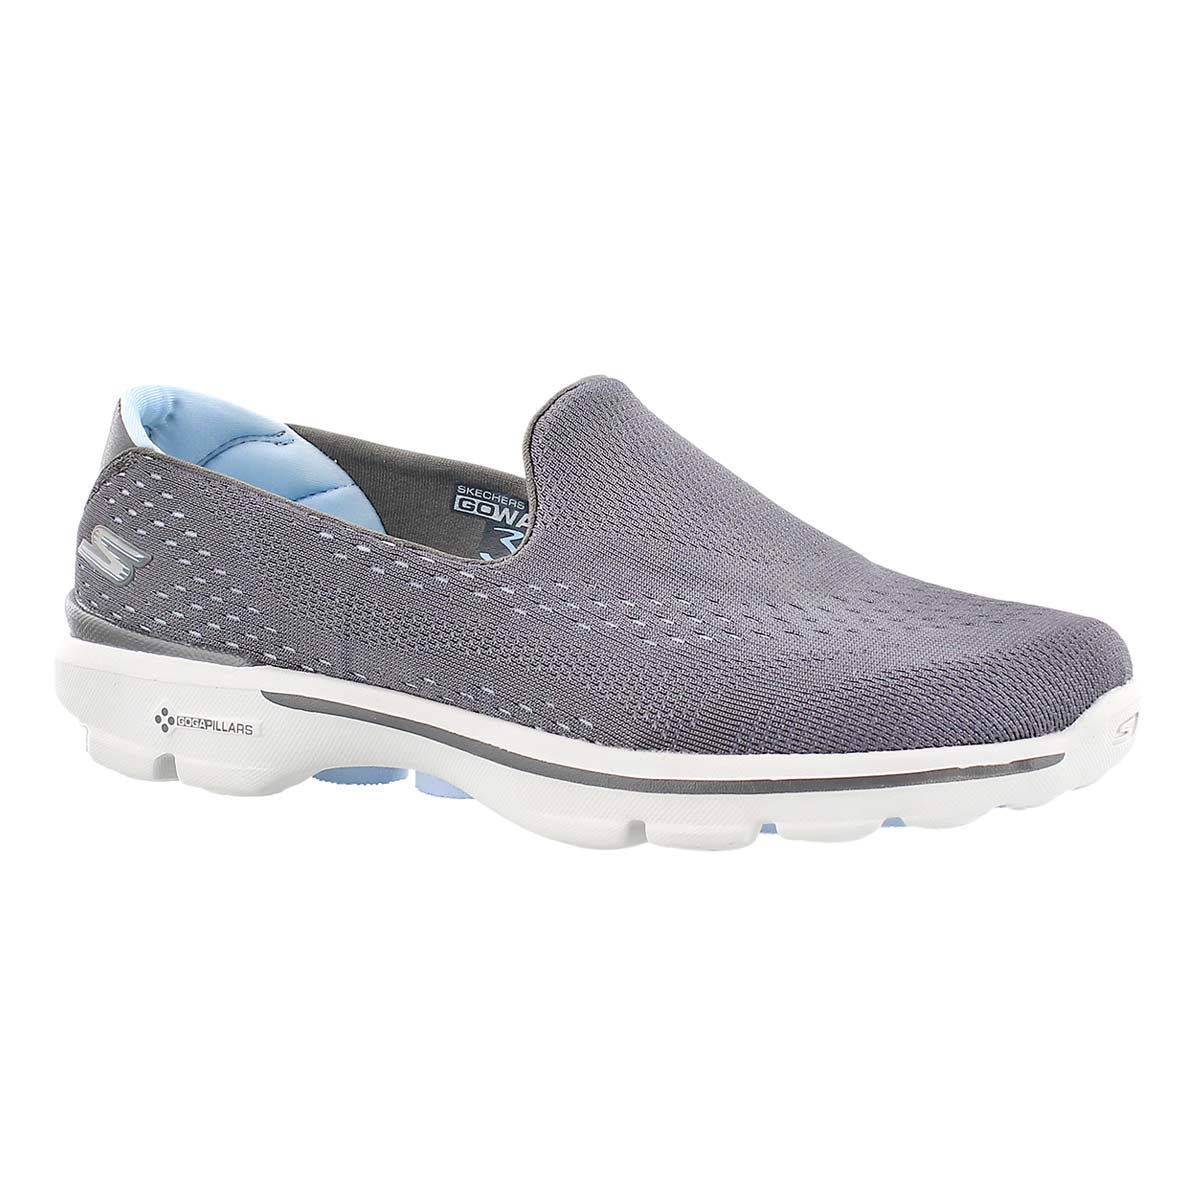 Lds GOwalk 3 gry/blu slipon walking shoe